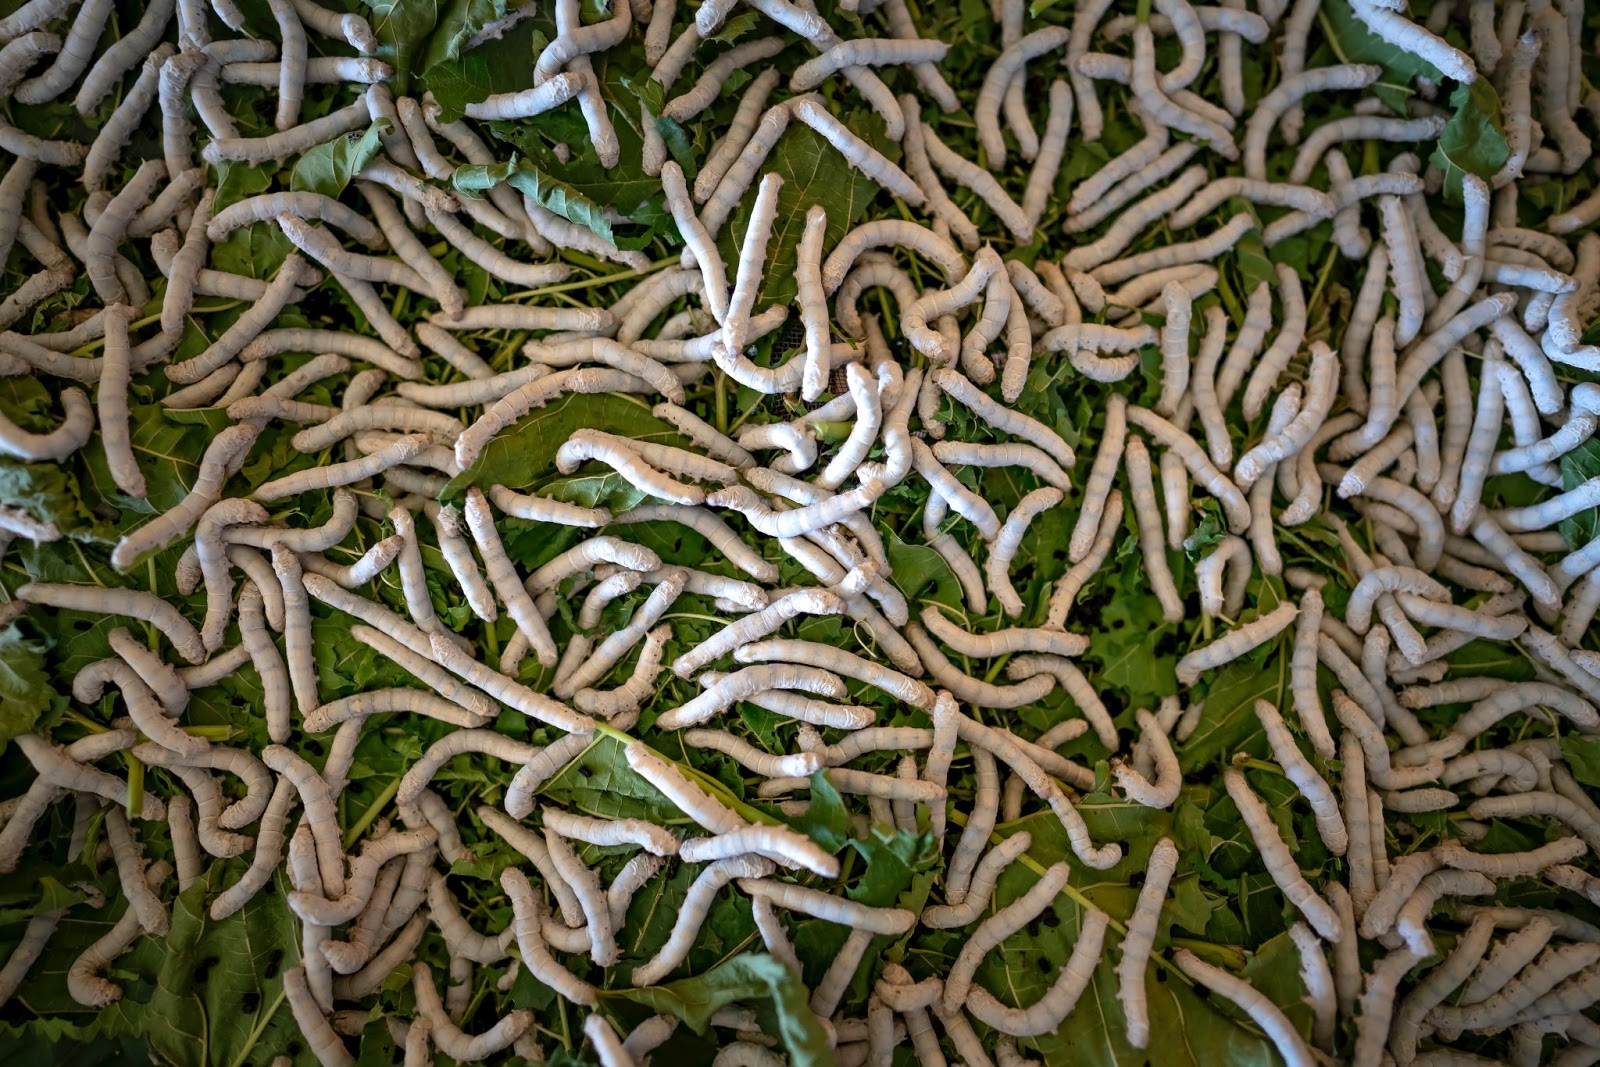 white silkworms crawling on leaves